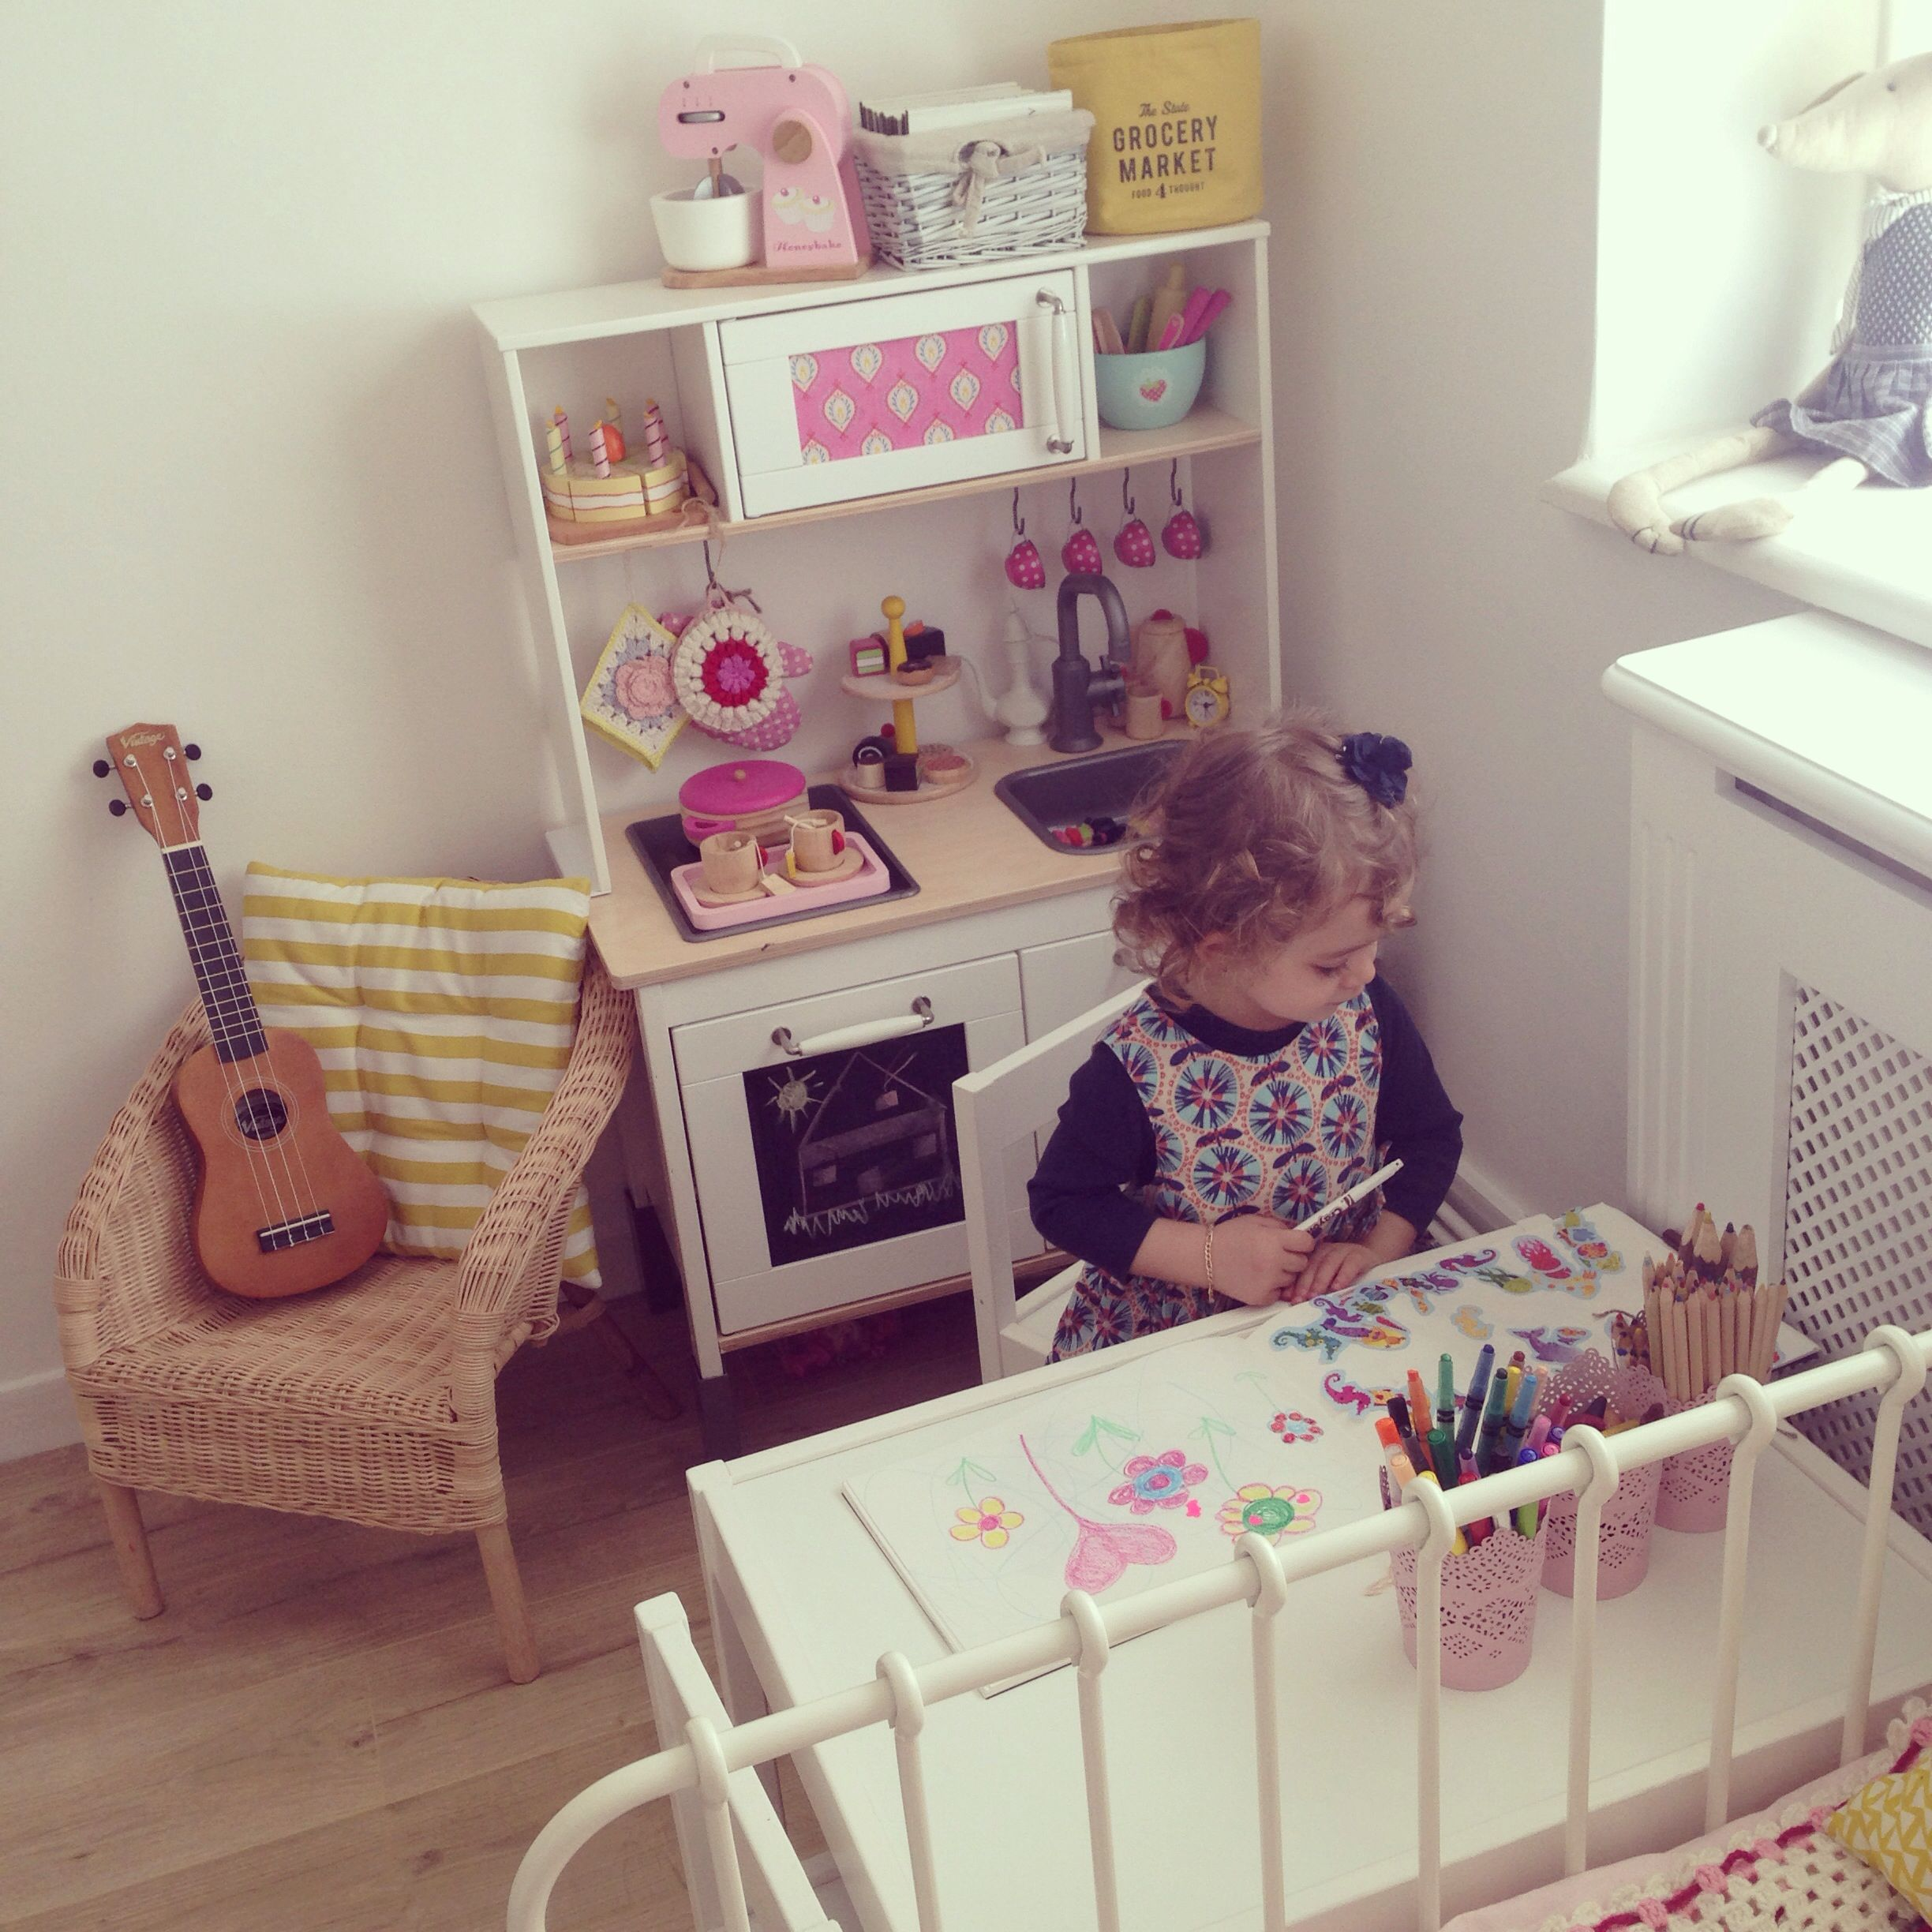 Ikea Kitchen For Kids: Esra's Toddler Room With Ikea Play Kitchen